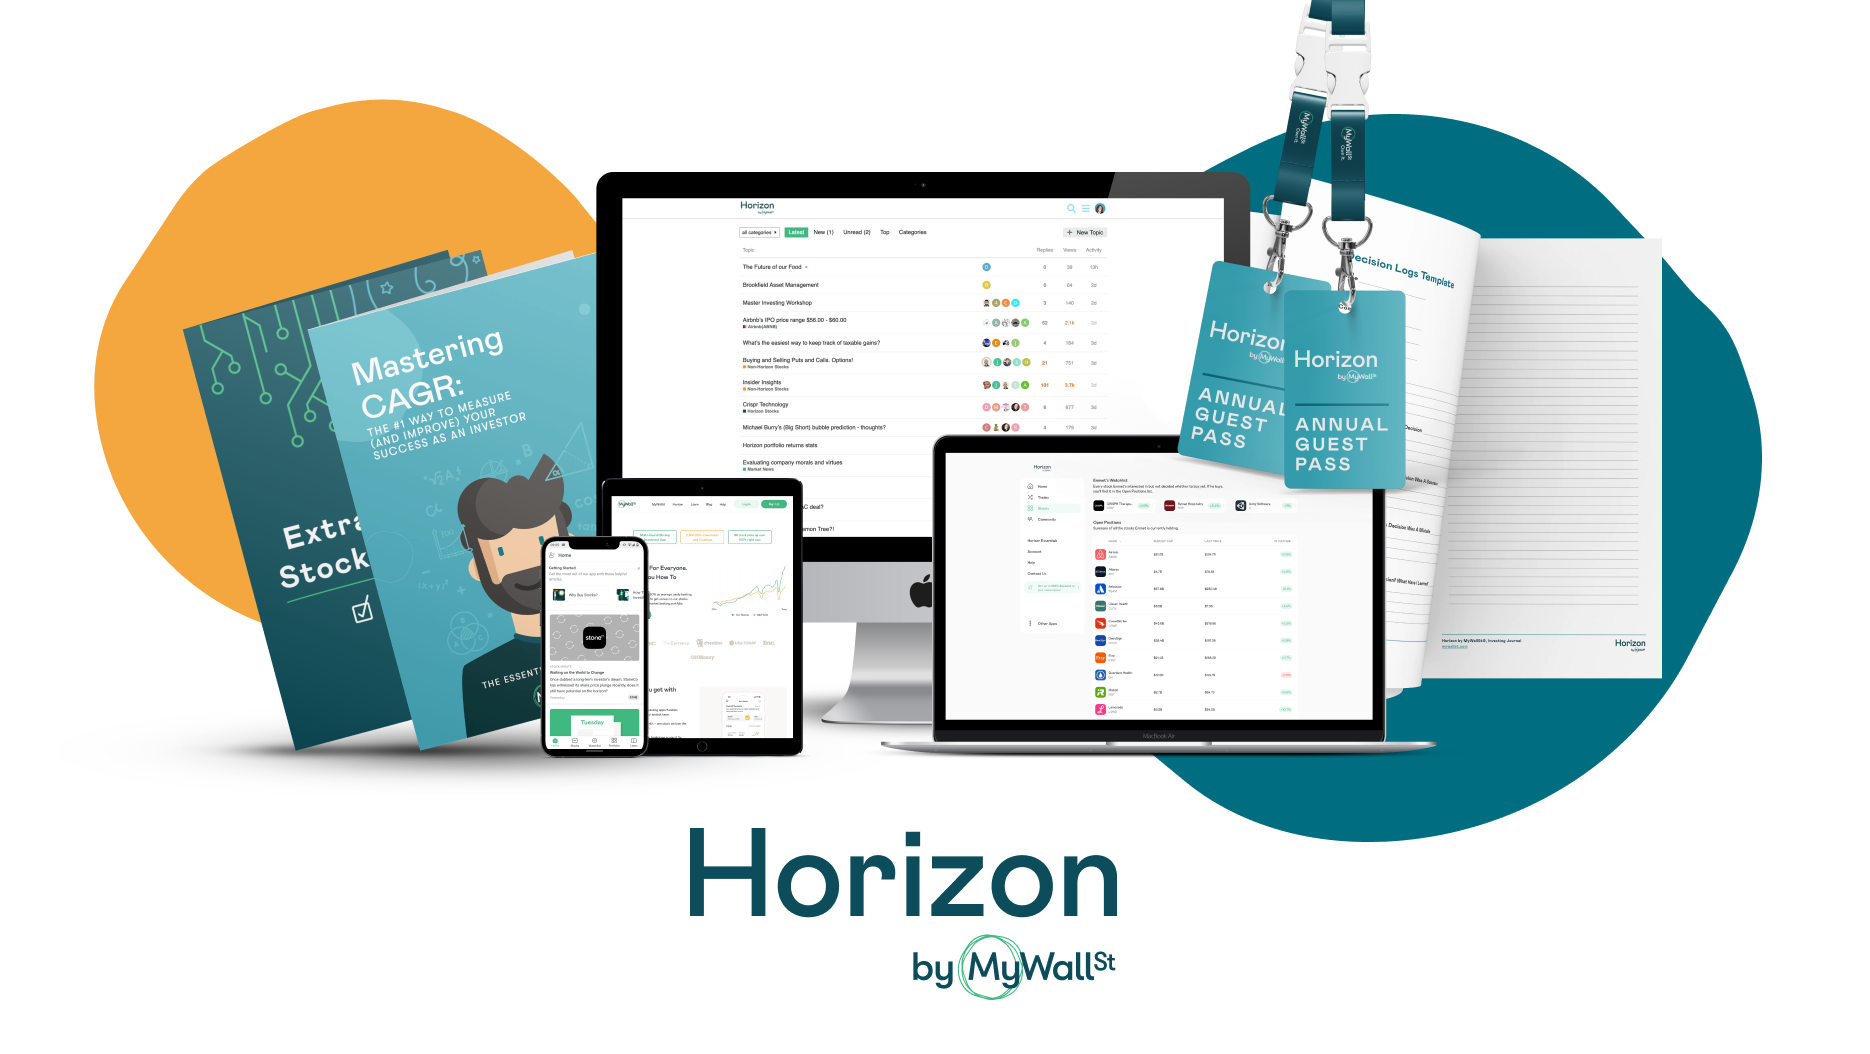 A product shot with all the products and services included in Horizon.